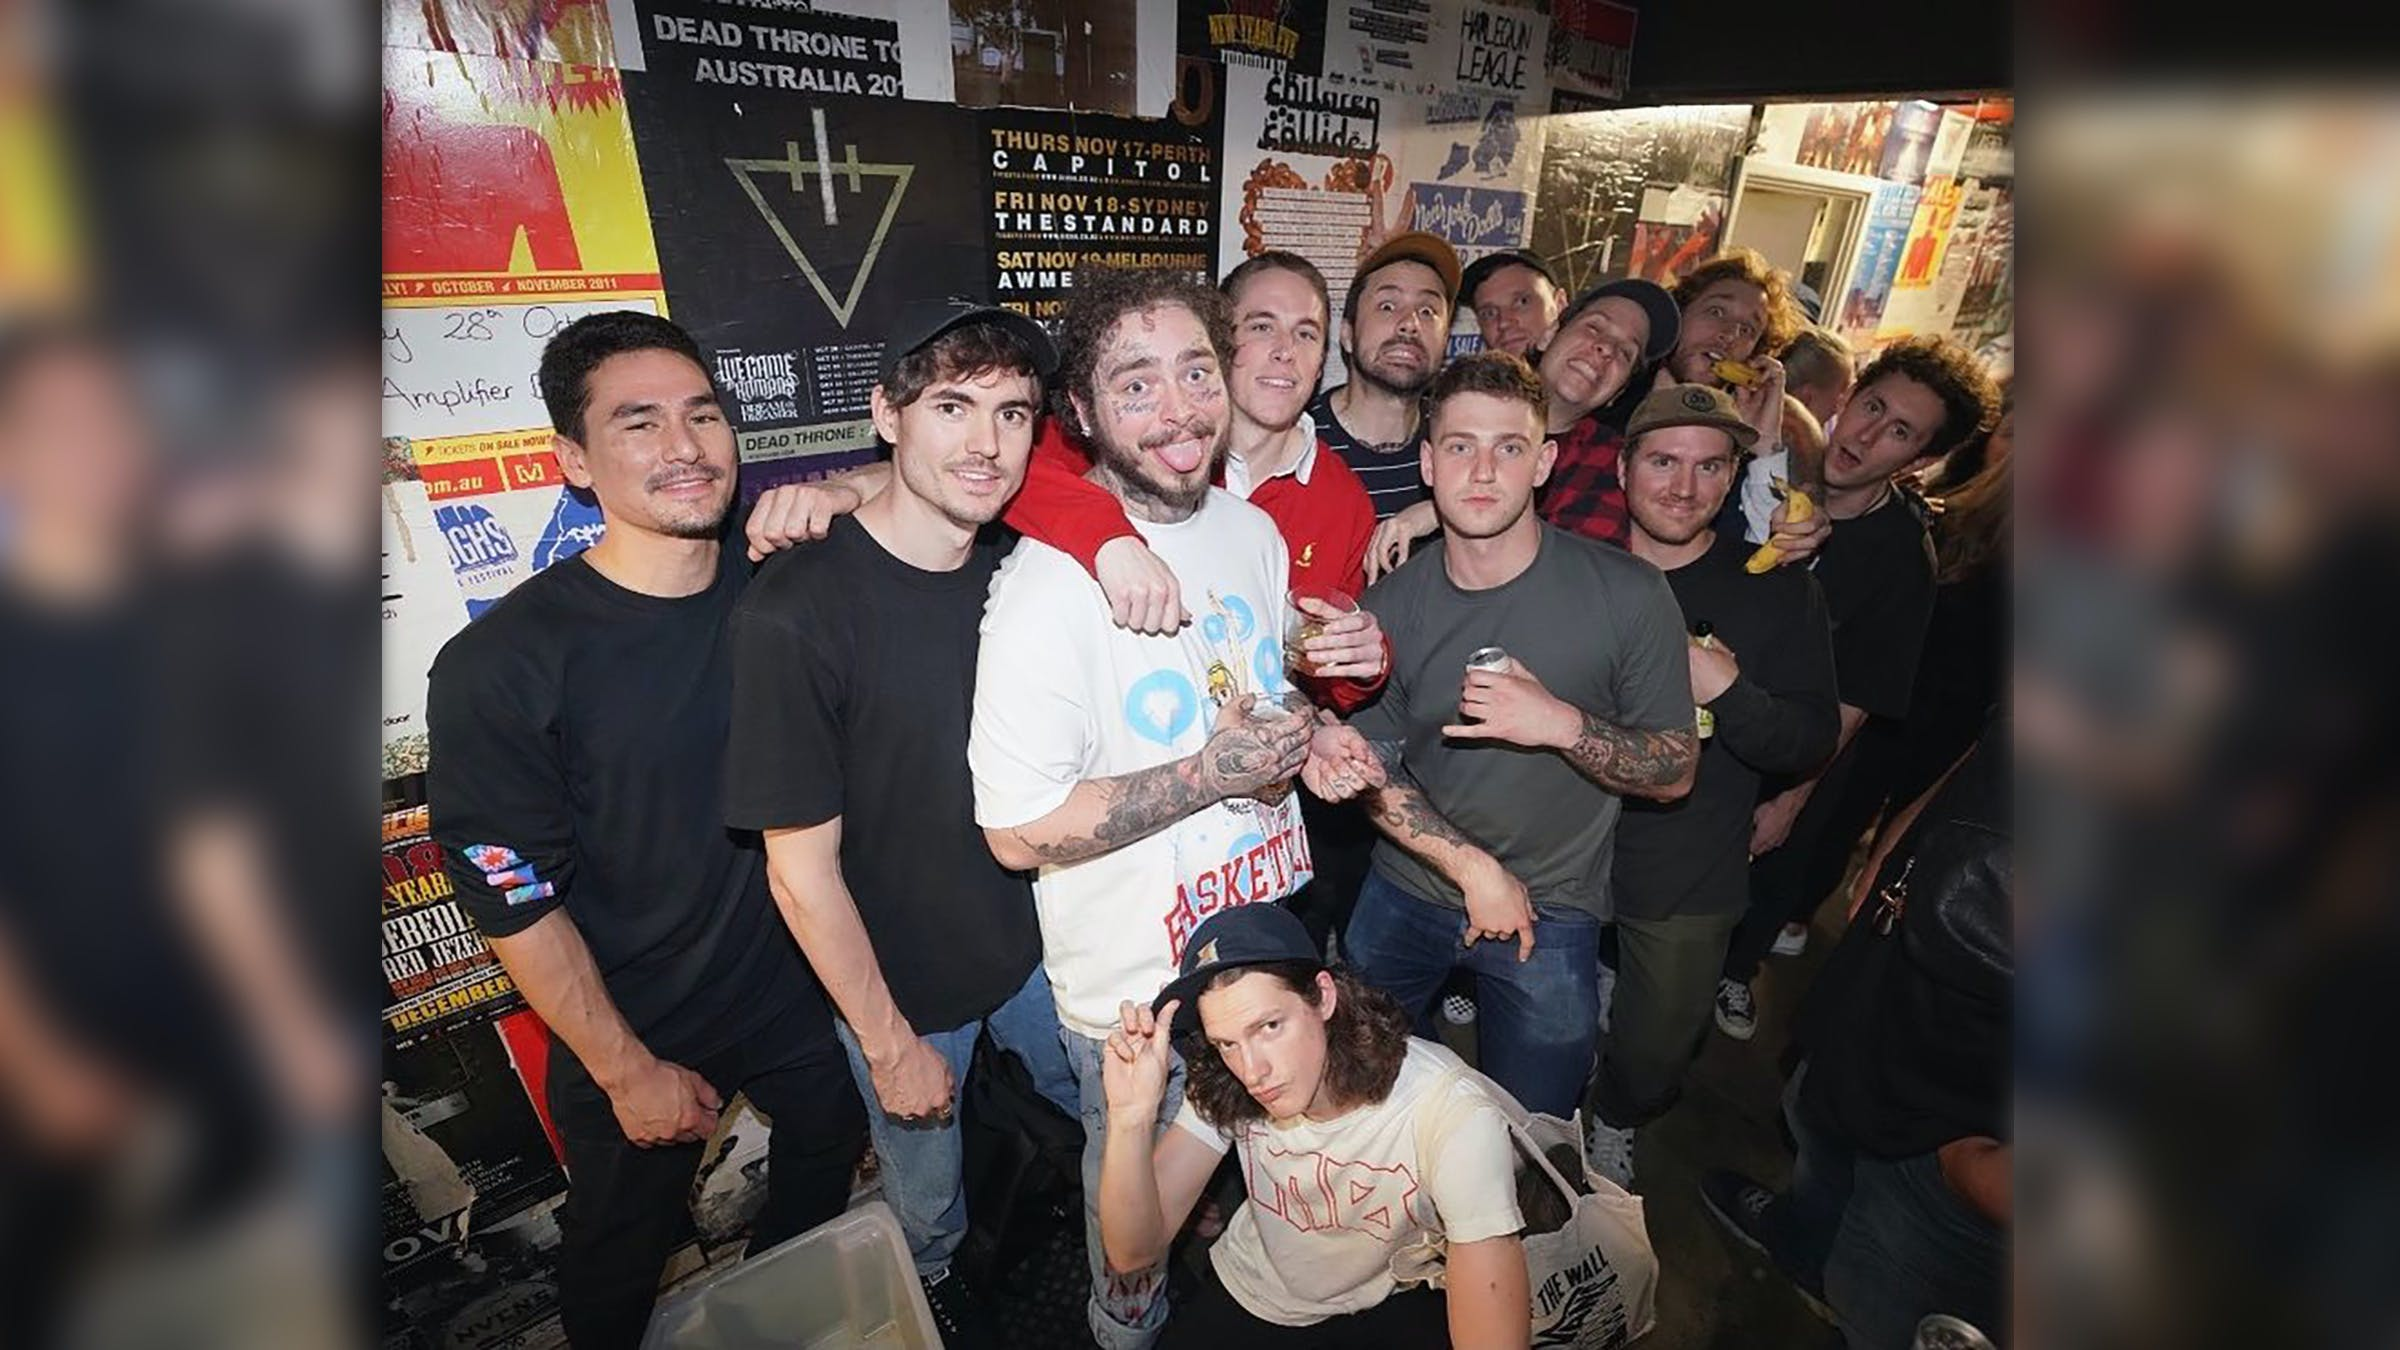 Post Malone Was Spotted at a Basement and The Story So Far Show in Australia